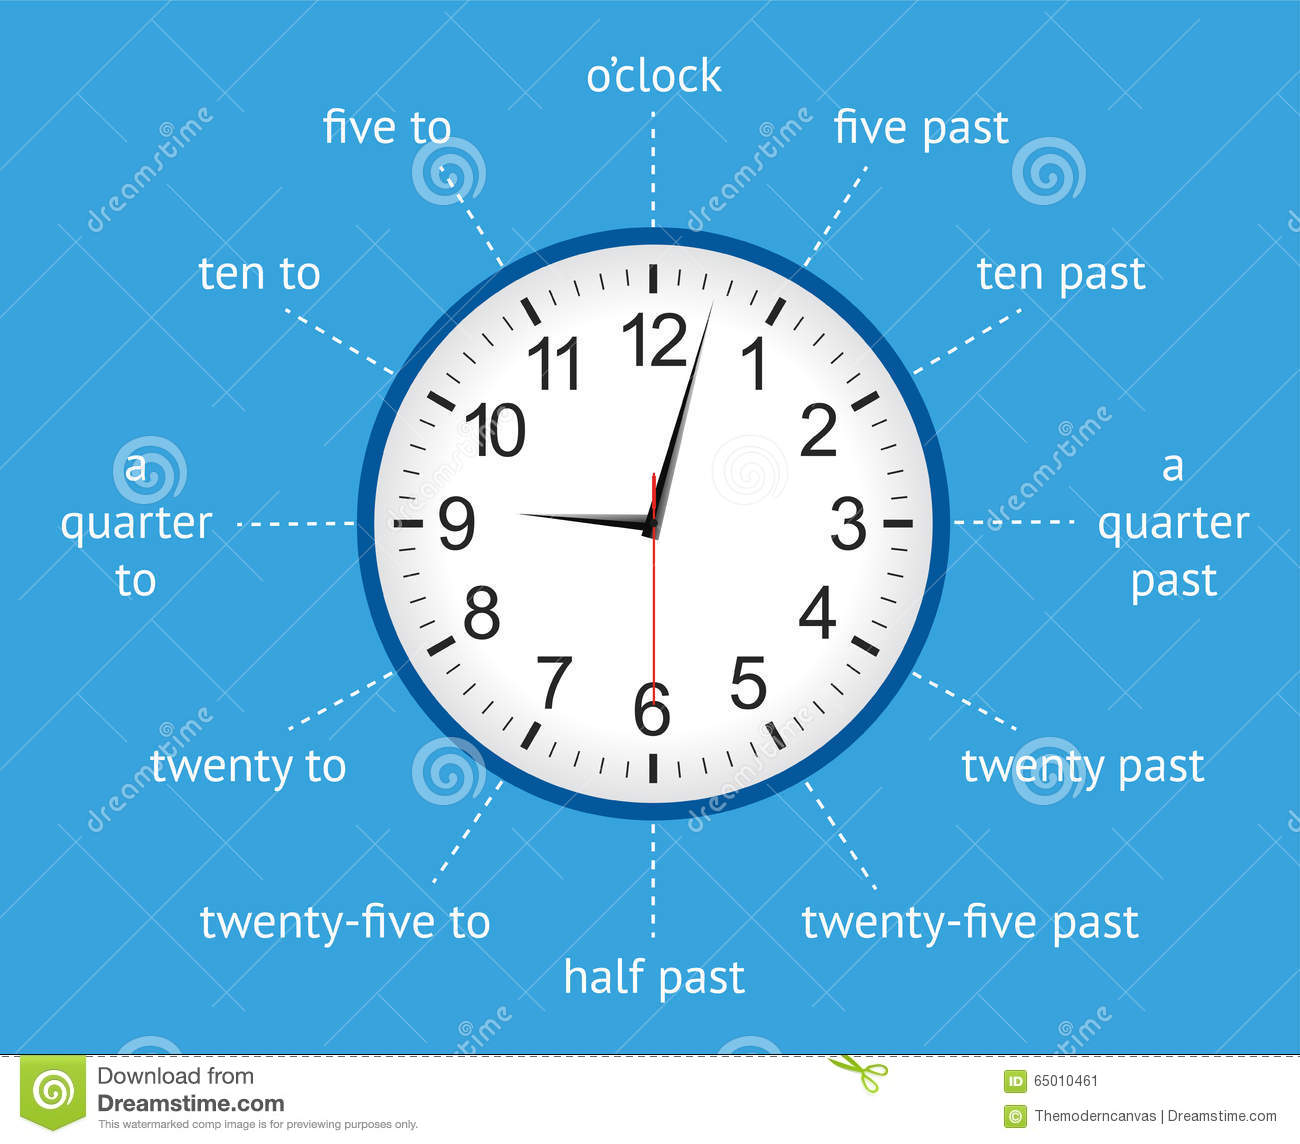 Worksheet Learning Clock early learning learn to tell time wall clock vector stock the with an analogue infographic image